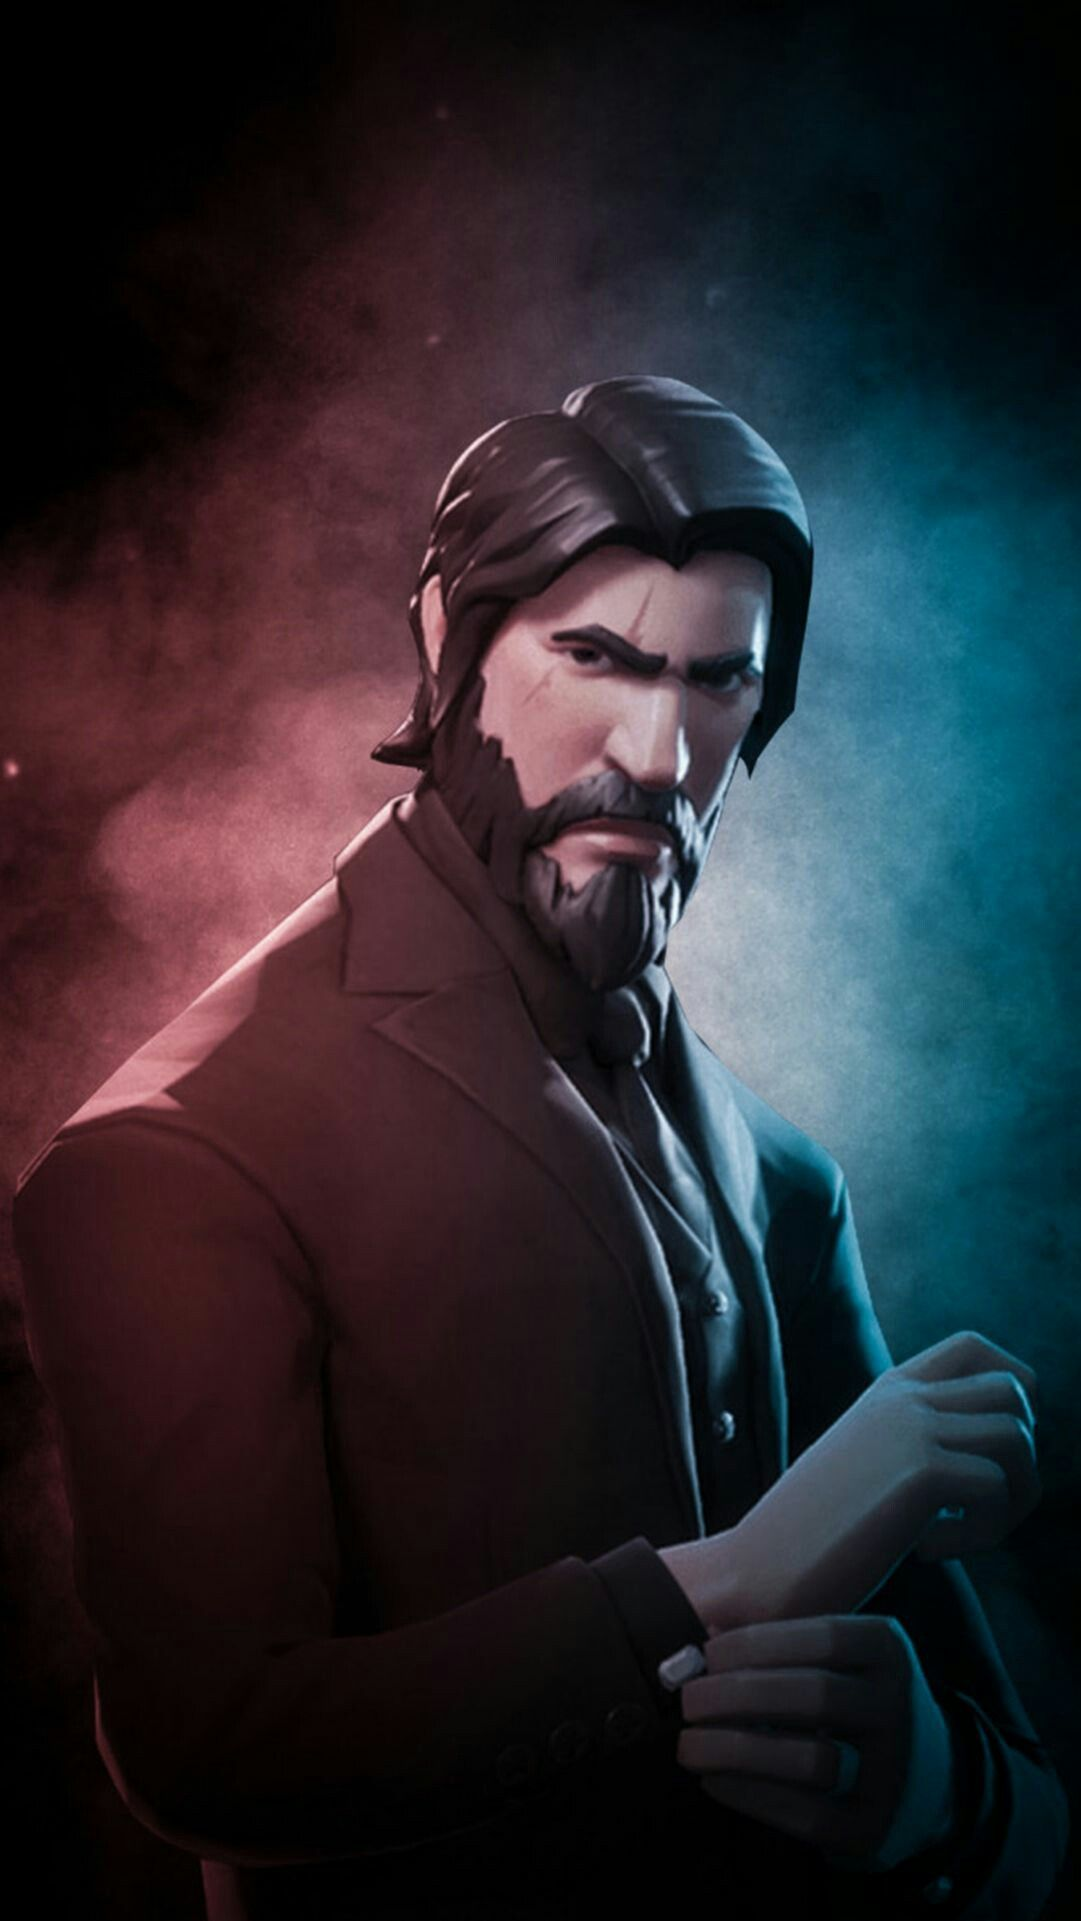 John Wick Best Gaming Wallpapers Gaming Wallpapers Gamer Pics